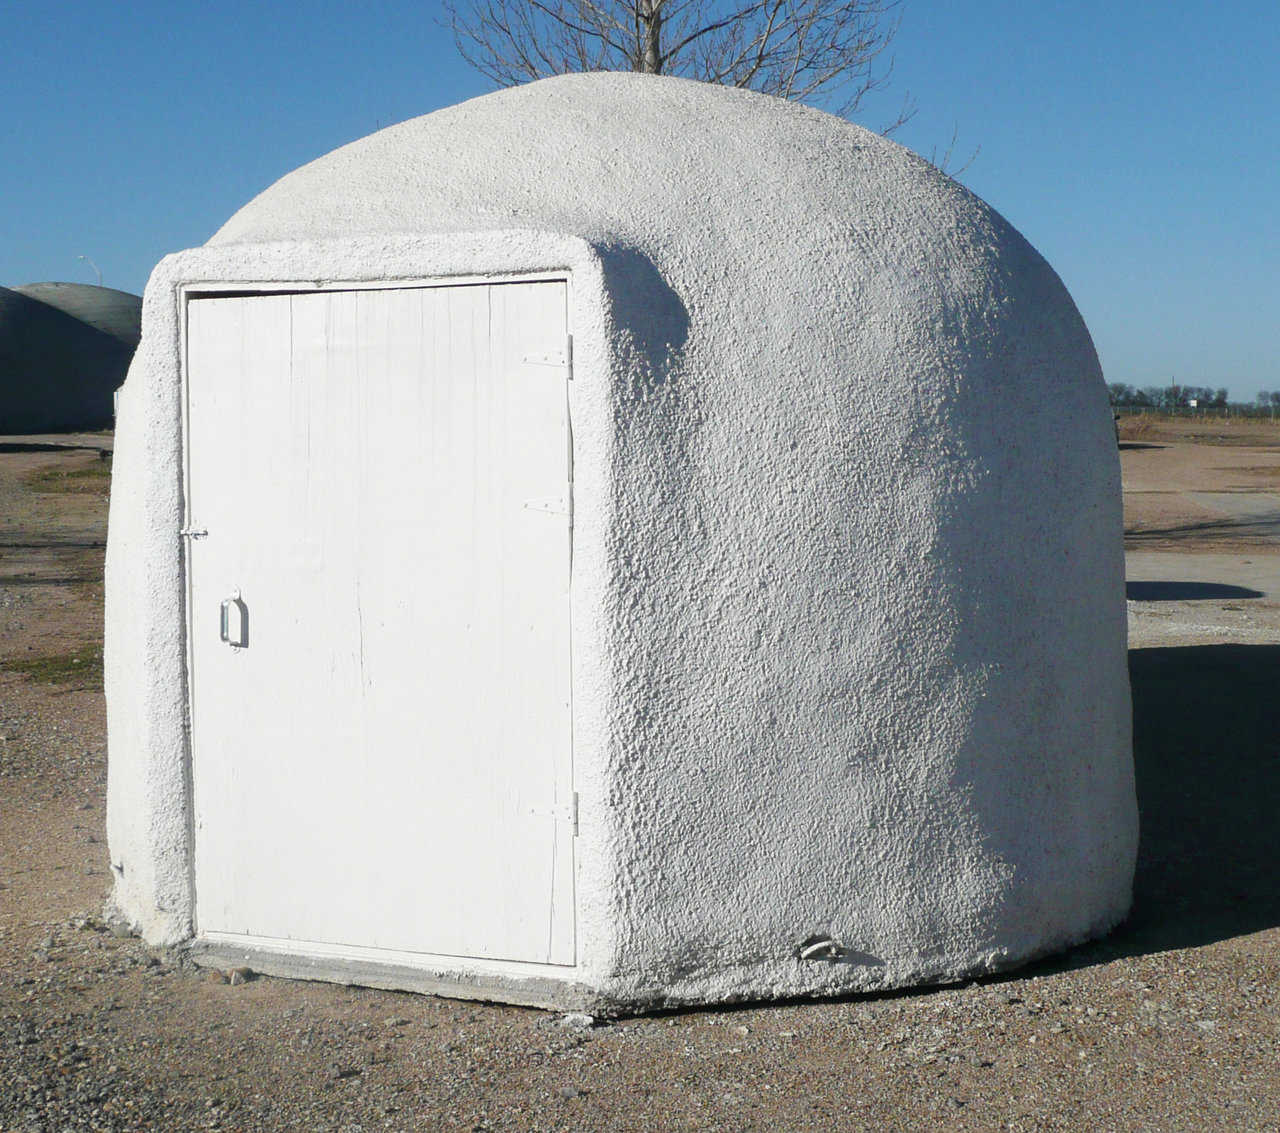 EcoShell II — Insulating an Ecoshell is simply another low cost alternative.